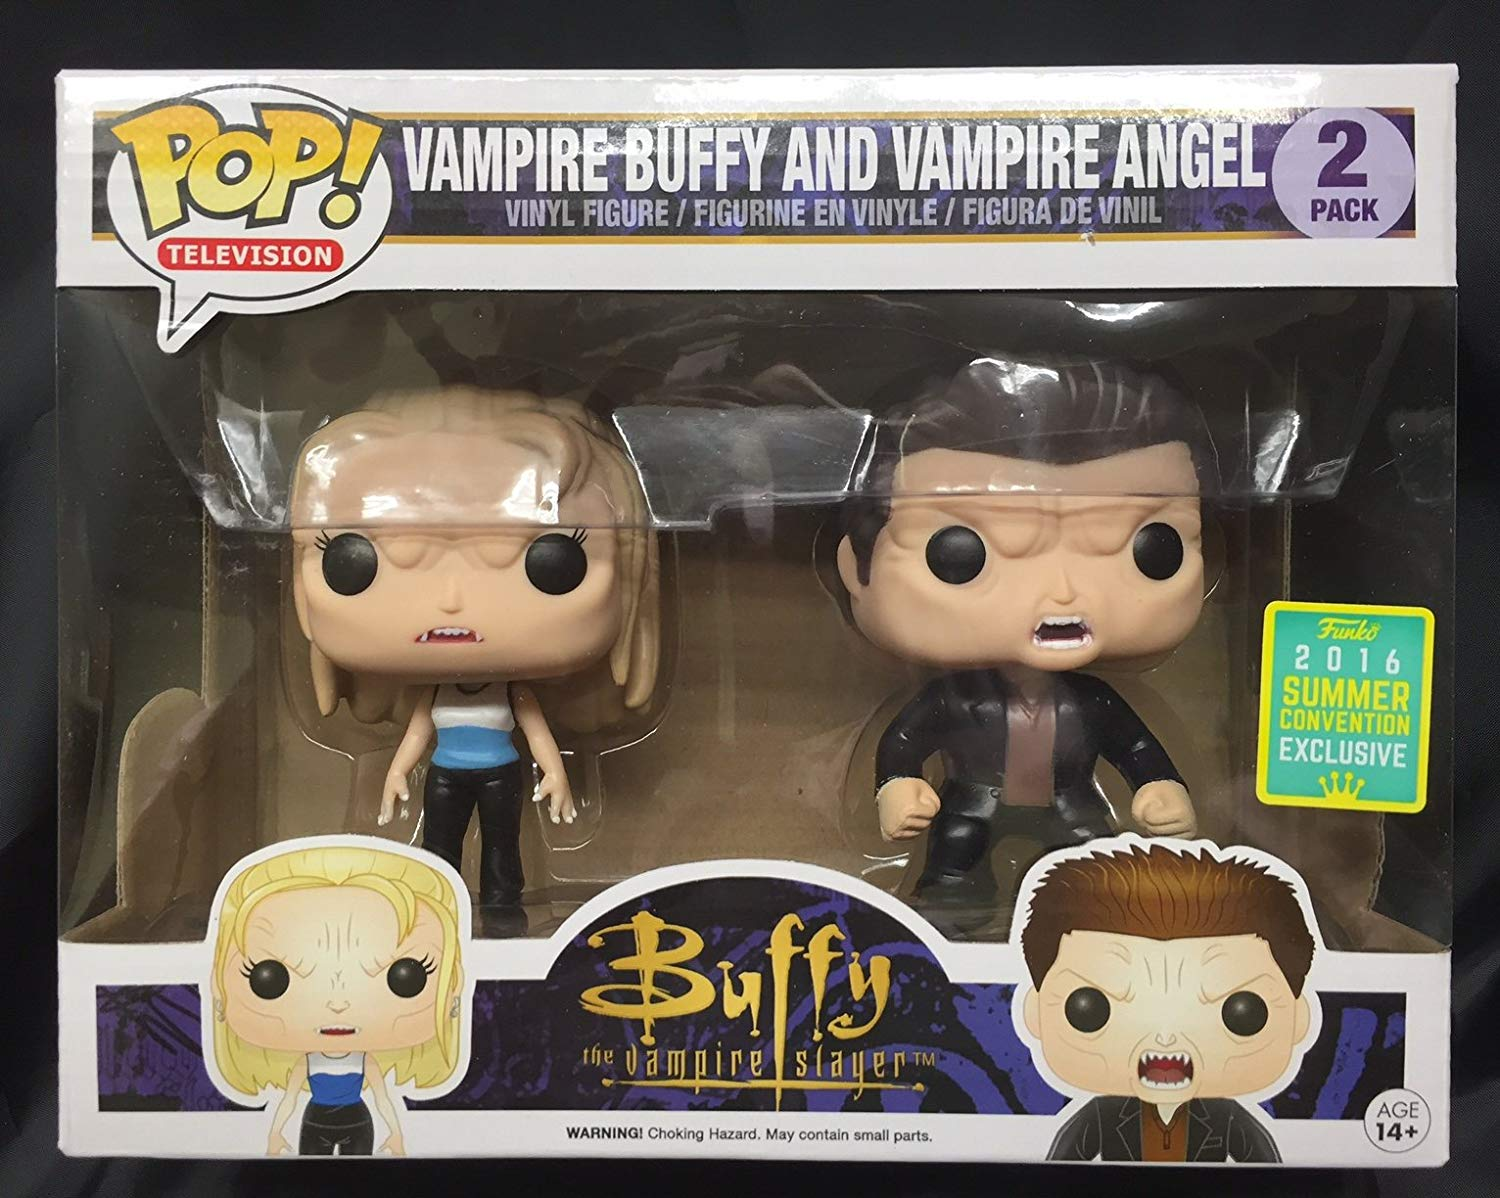 2016 SDCC Exclusive Funko Pop Vampire Buffy And Angel 2 Pack Vinyl Action Figures Collectible Model Toy With Original Box